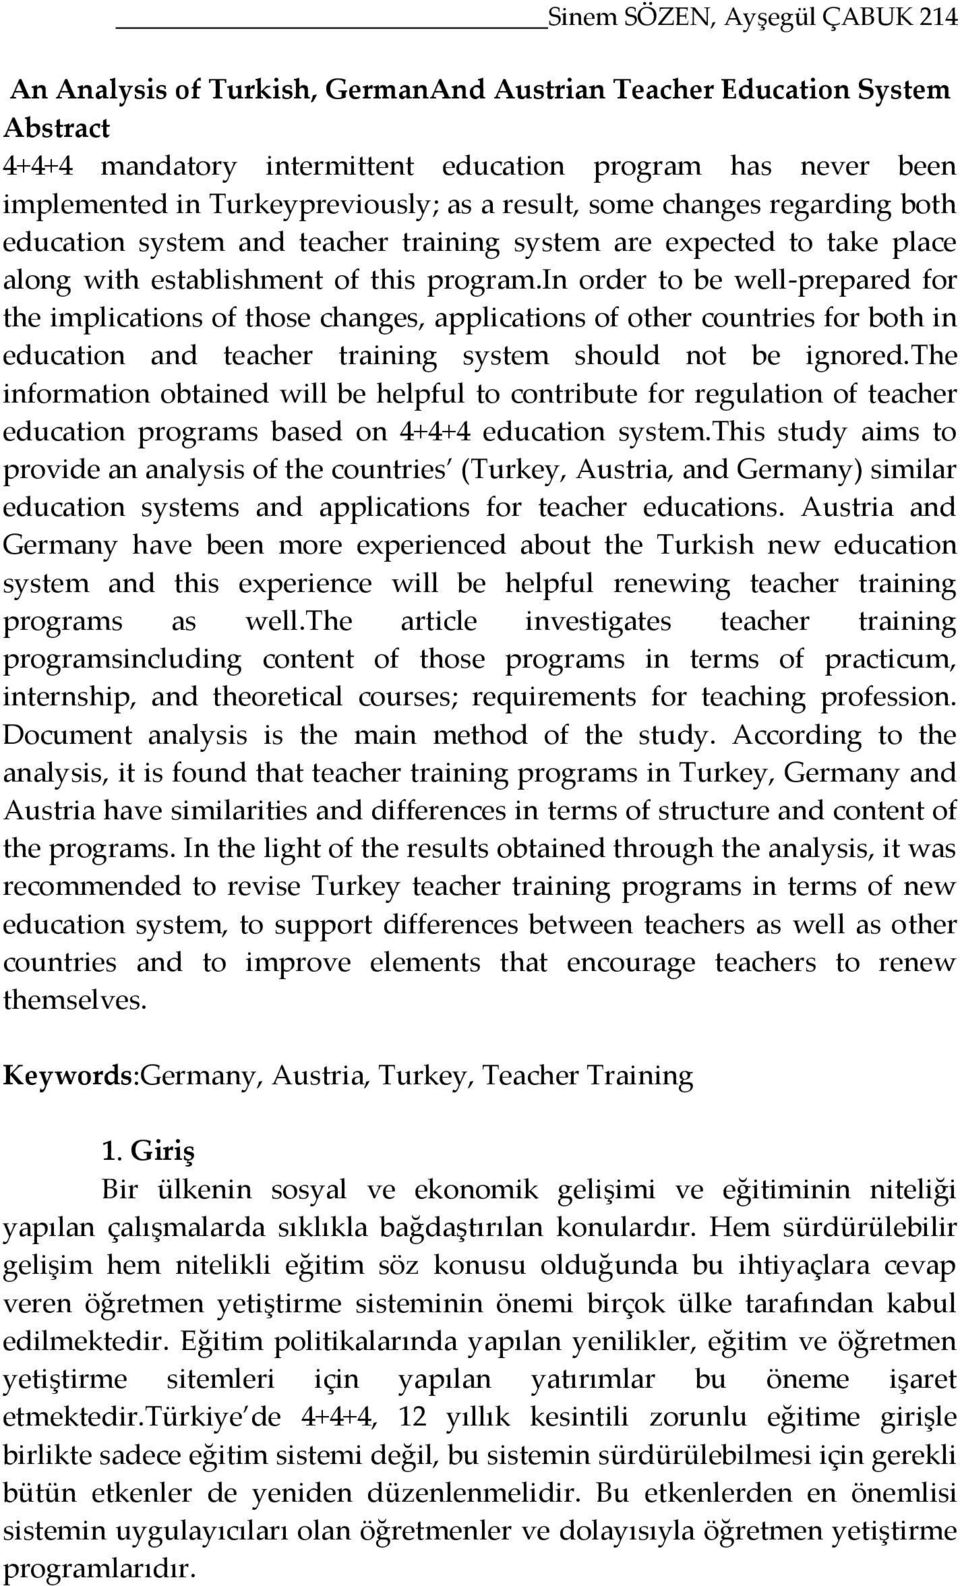 in order to be well-prepared for the implications of those changes, applications of other countries for both in education and teacher training system should not be ignored.